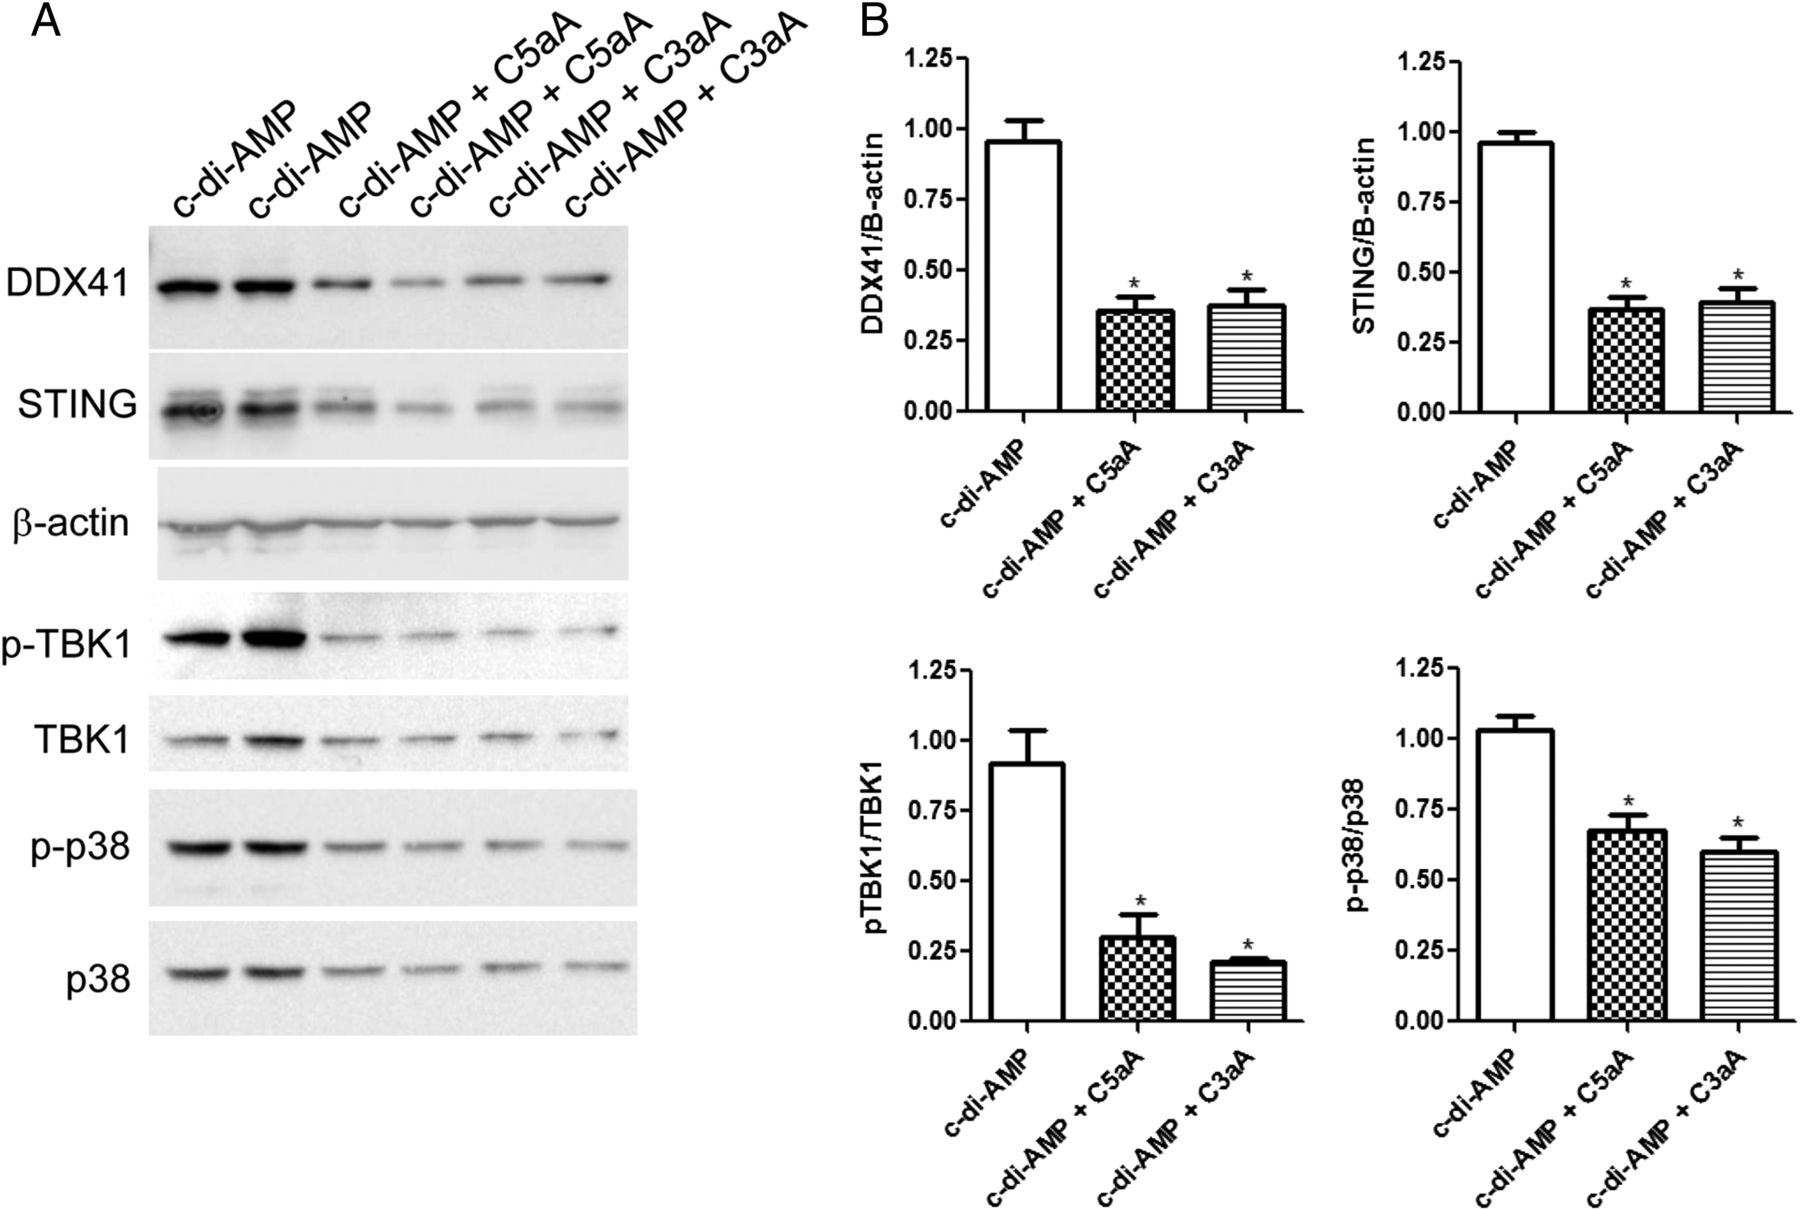 The Complement Anaphylatoxins C5a and C3a Suppress IFN-β